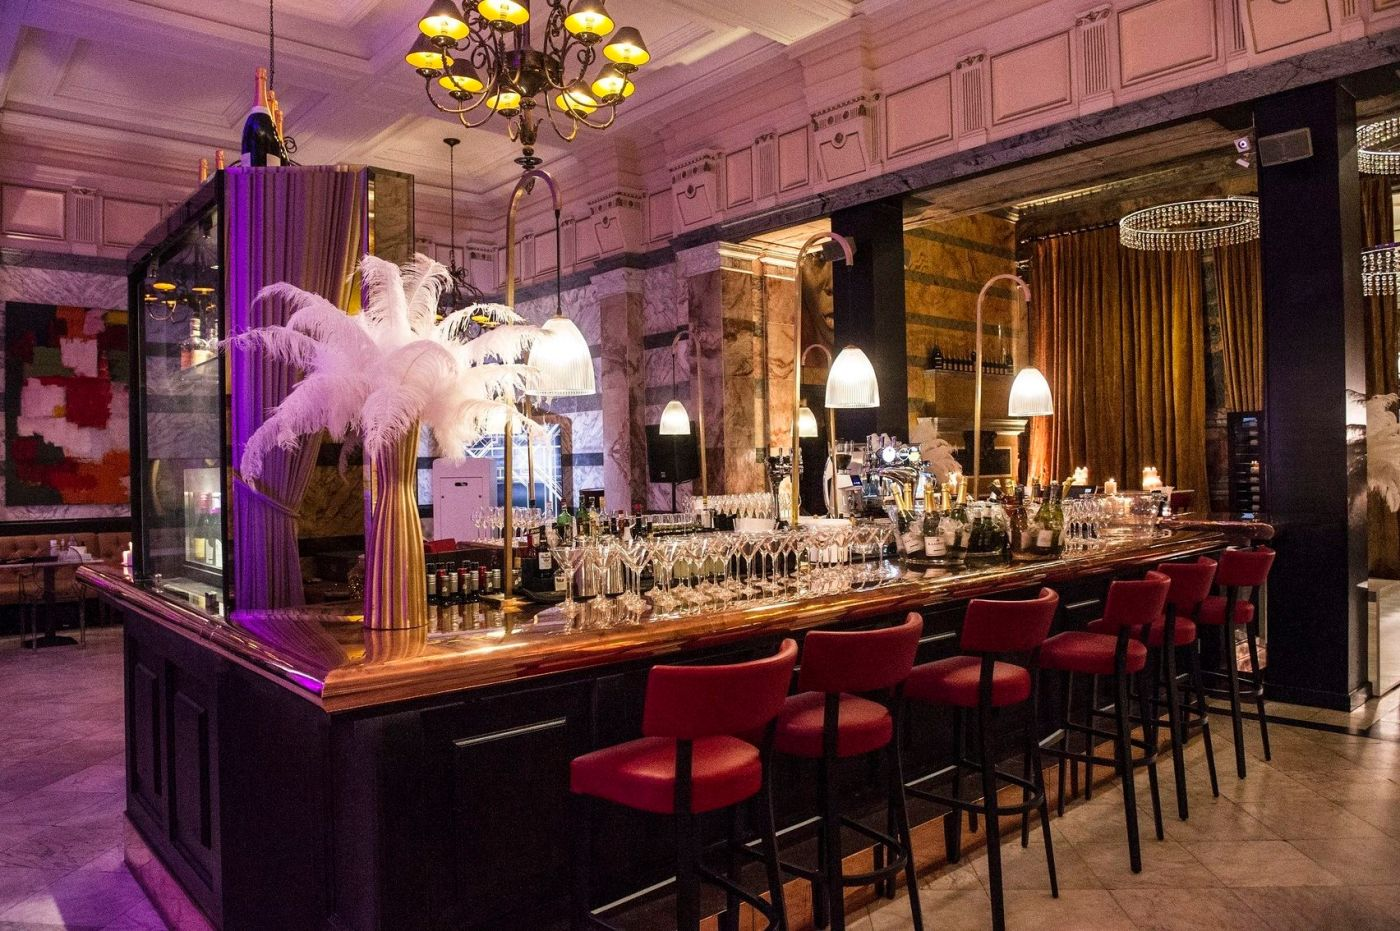 A grand venue which has high ceilings and marble pillars. The image has the focus on the island bar in the middle of the room which is surrounded by red leather bar stools and has a range of glasses on the bar and feathers decorating the corner. A truly extravagant Christmas party venue in London